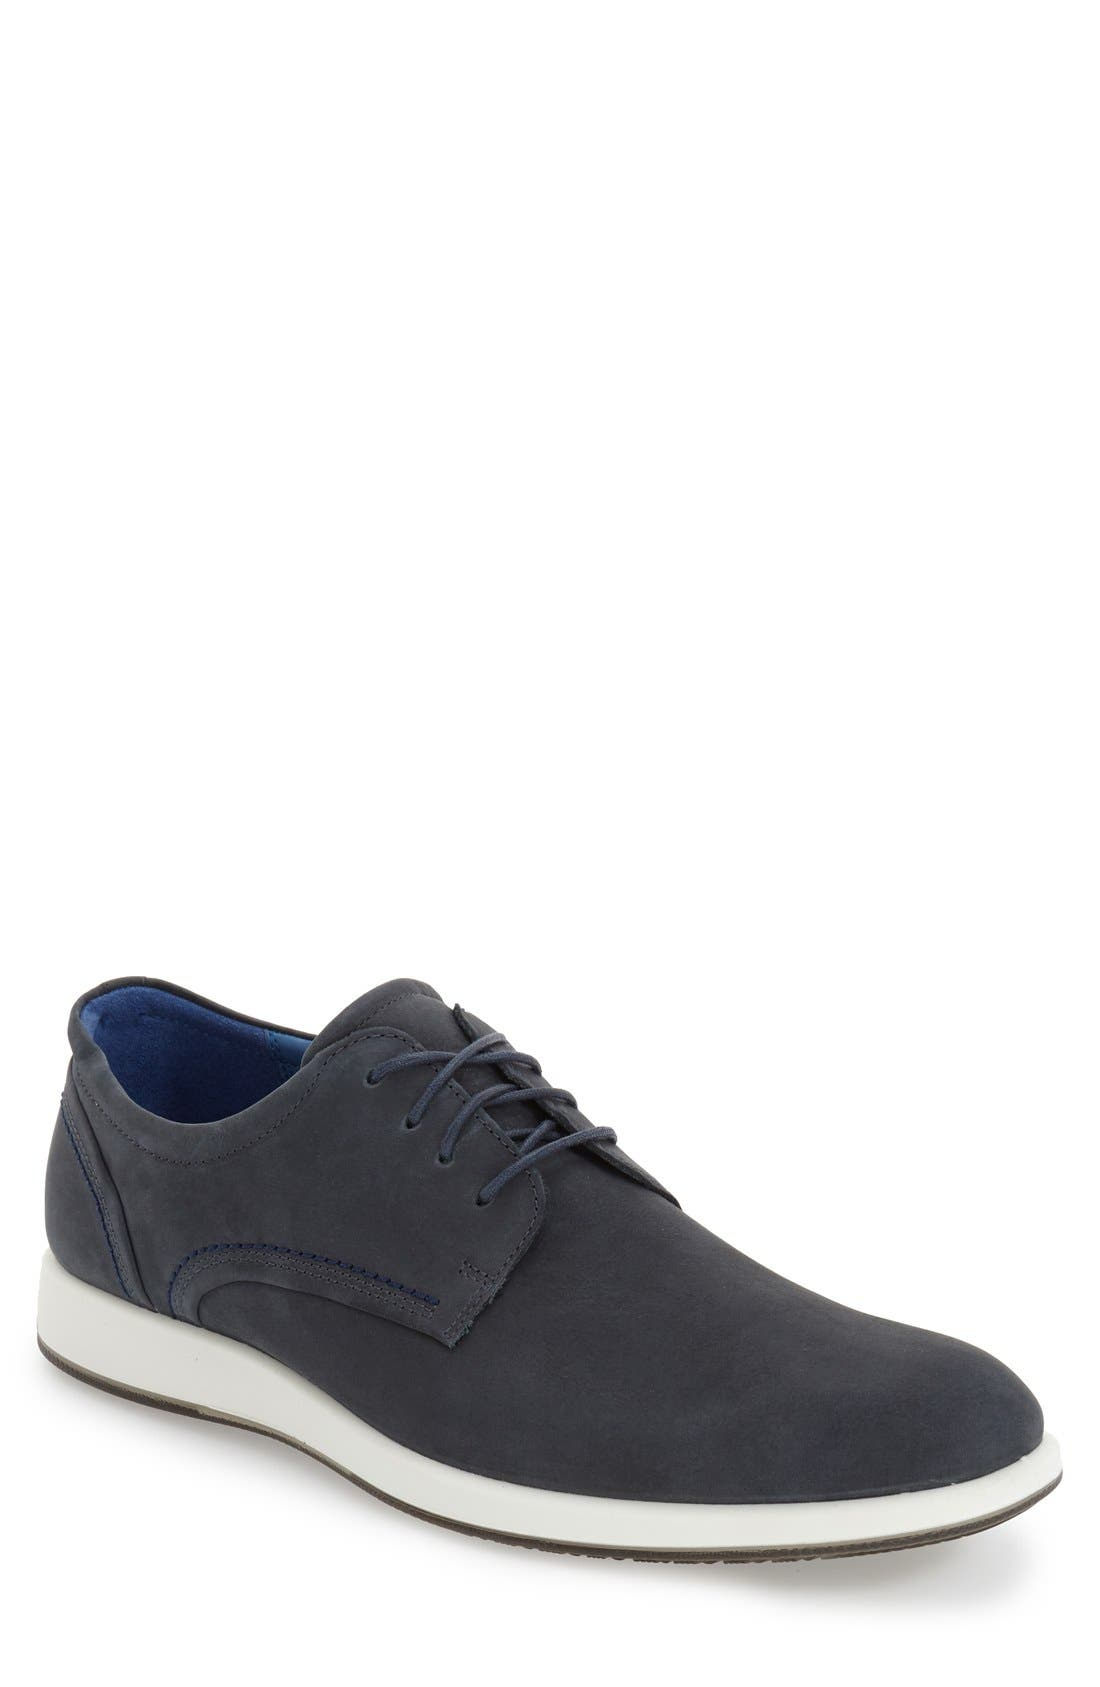 'Jared' Leather Oxford,                         Main,                         color, Navy Leather